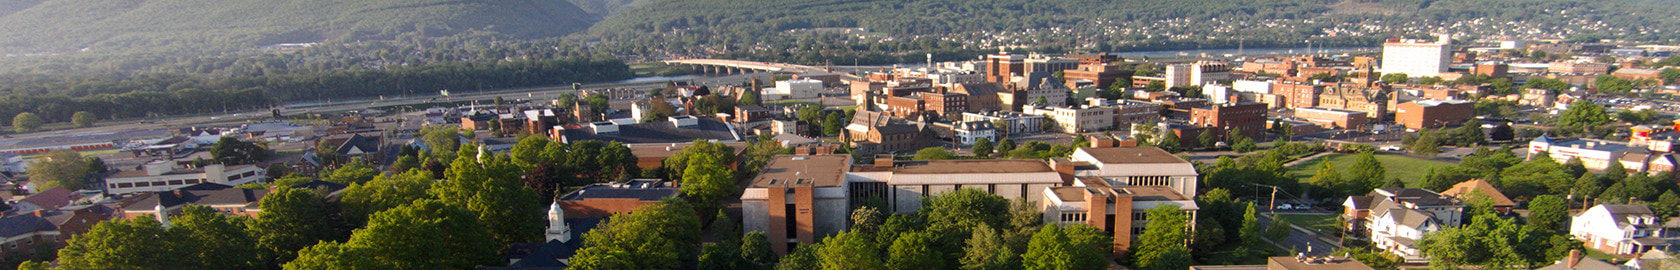 Aerial view of campus with Williamsport, the Susquehanna River and Bald Eagle Mountain as a backdrop